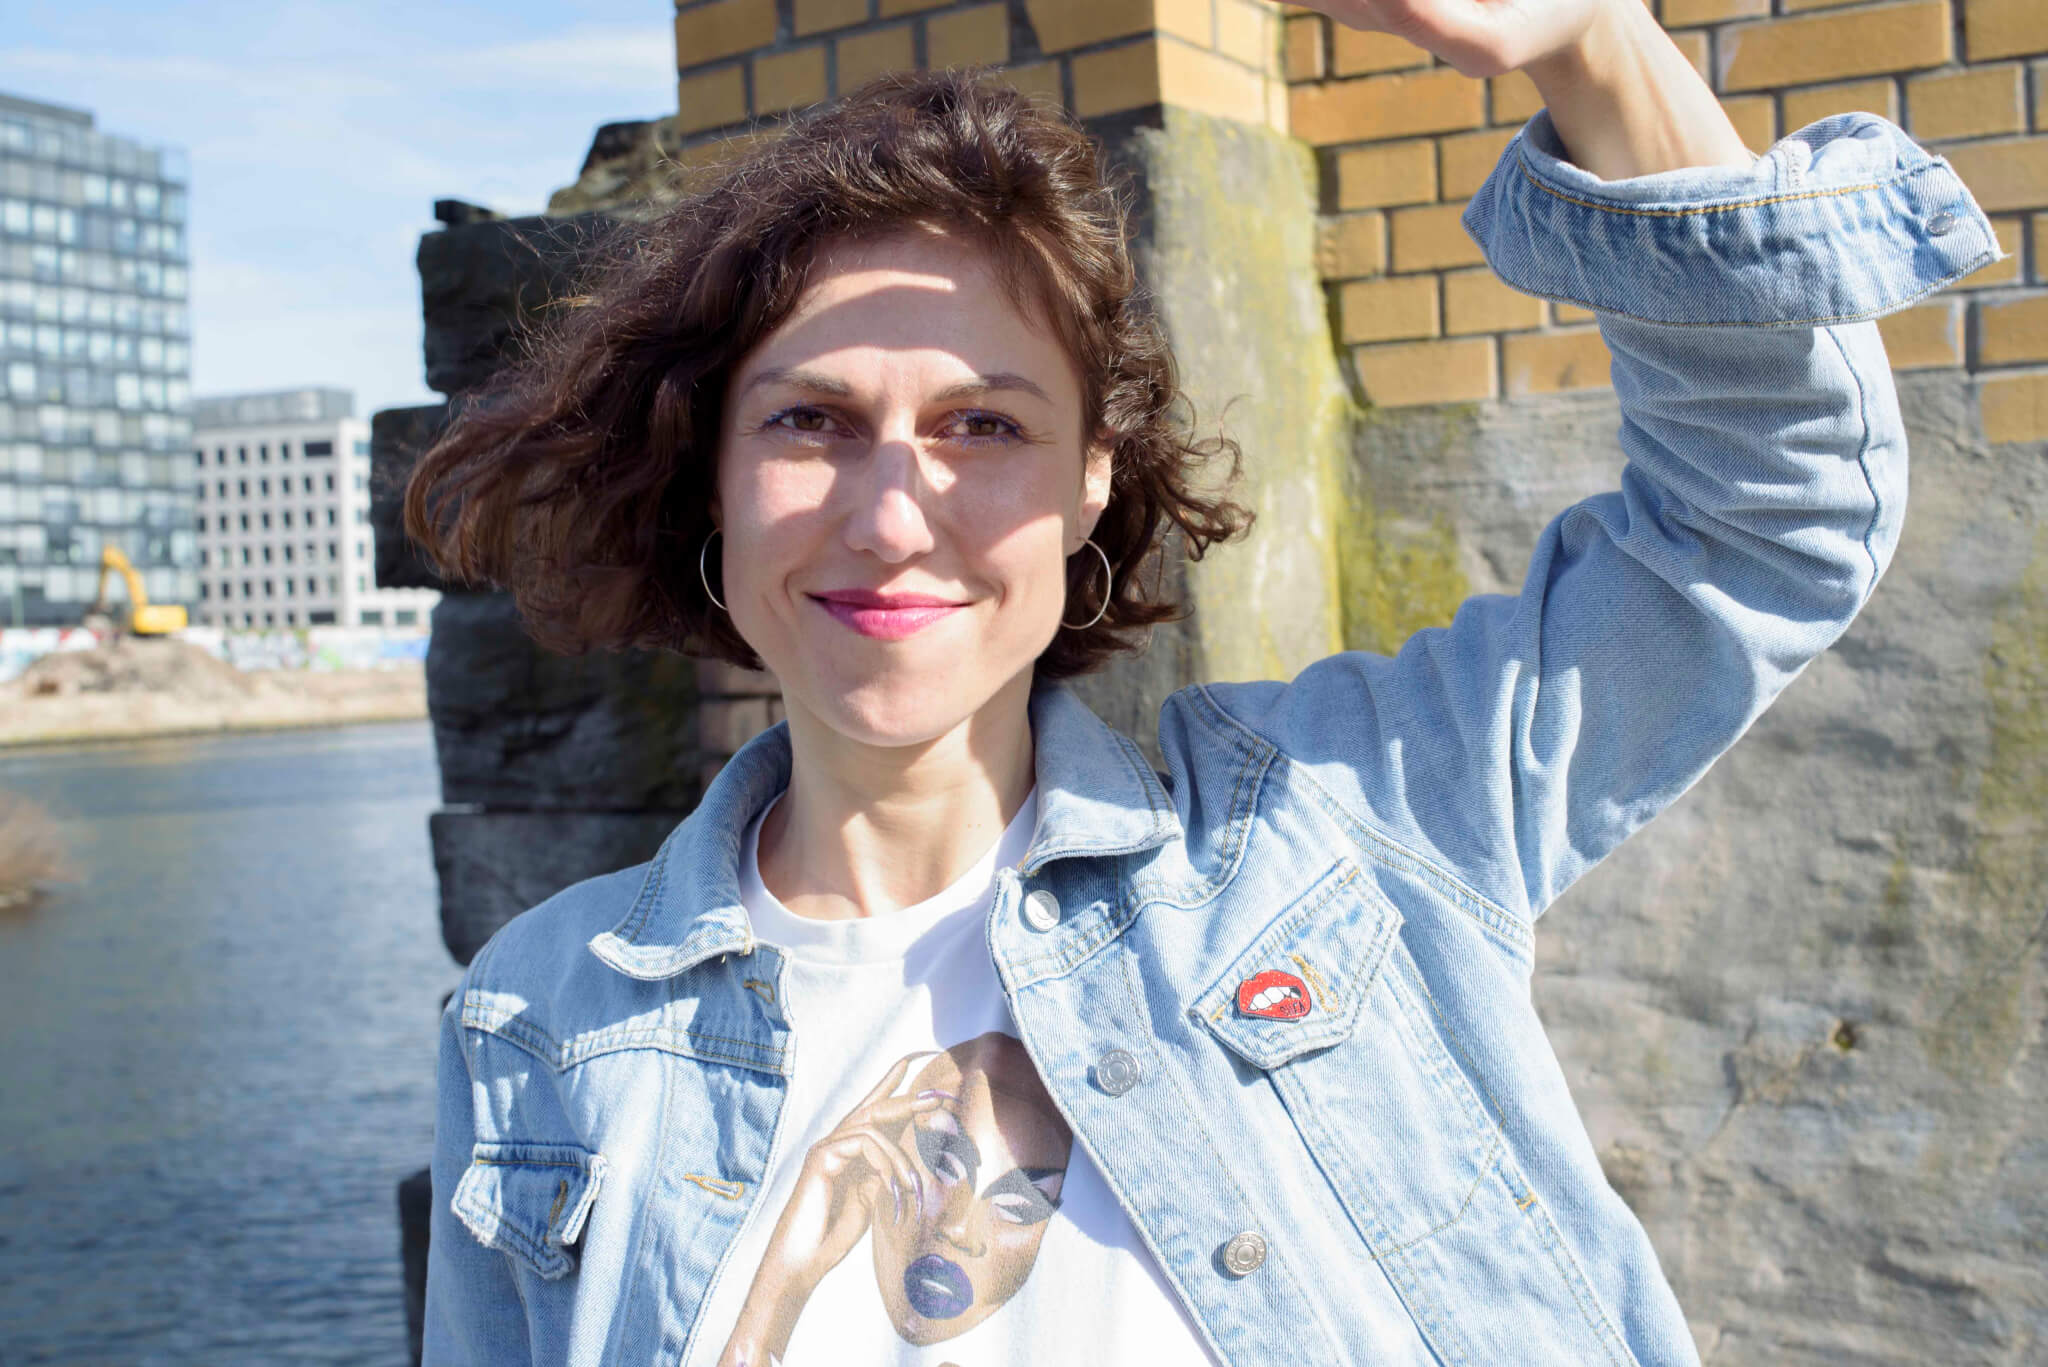 Dr. Rubinstein On Acid Techno, Dancing And Her Love Of Rave Culture